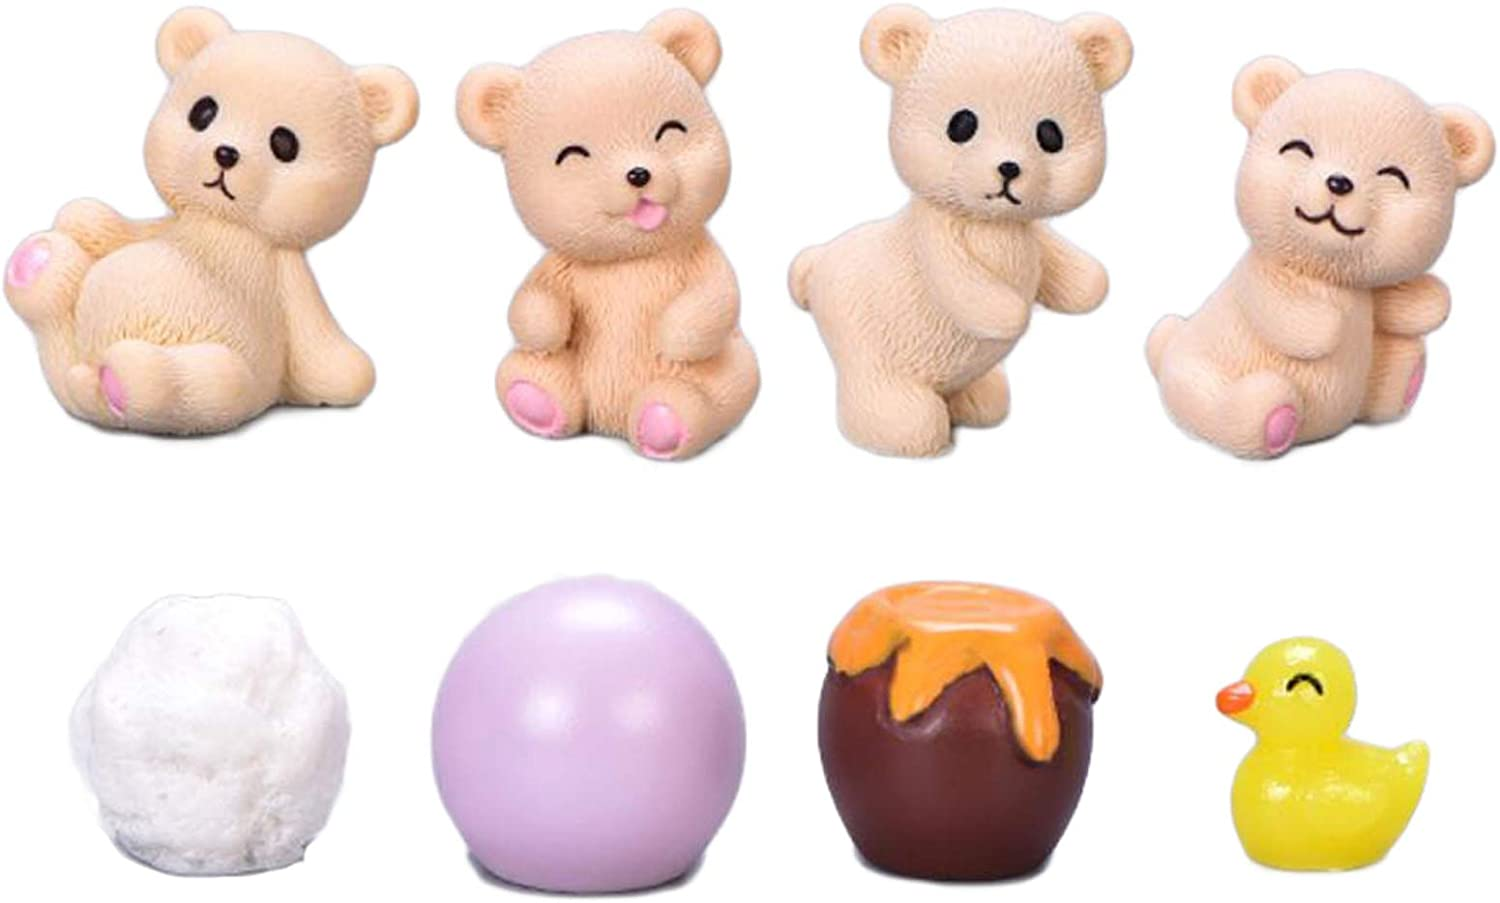 Miniature Bear Figurines, 8 Pcs Mini Bears with Honey Jars Bear Figurines Model Cake Toppers Fairy Garden Accessories for Micro Landscape Plant Flower Pots